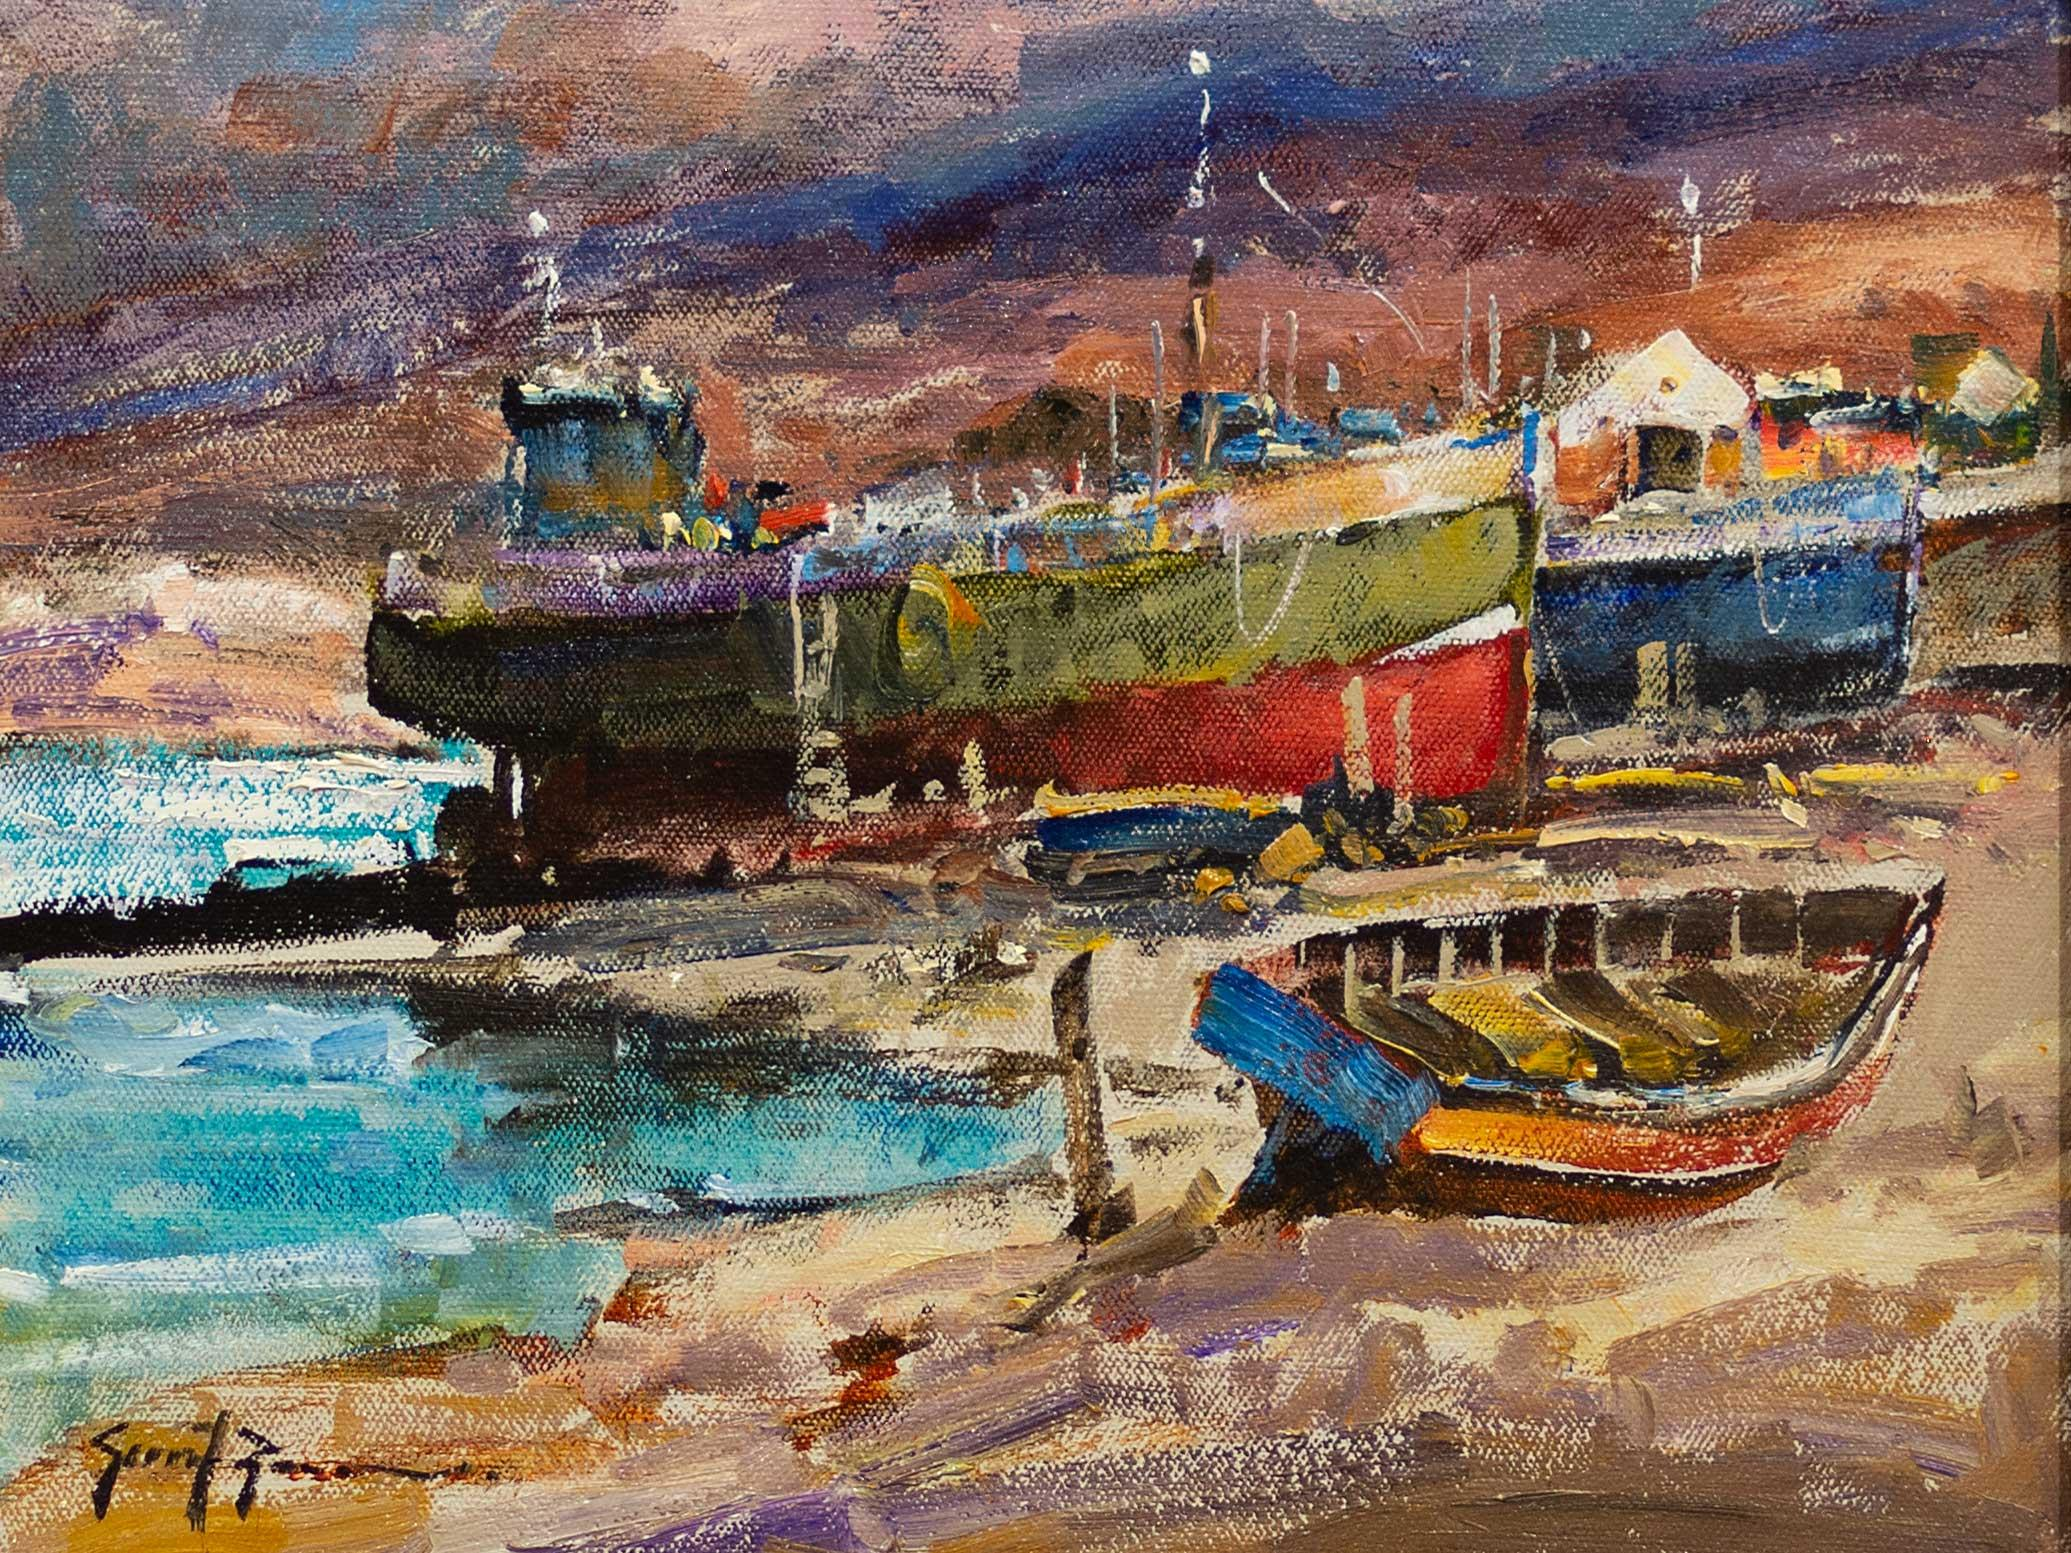 Gerrit Roon (SA 1937 - 2017) Oil, Boats in Dry Dock, Signed, 24 x 30